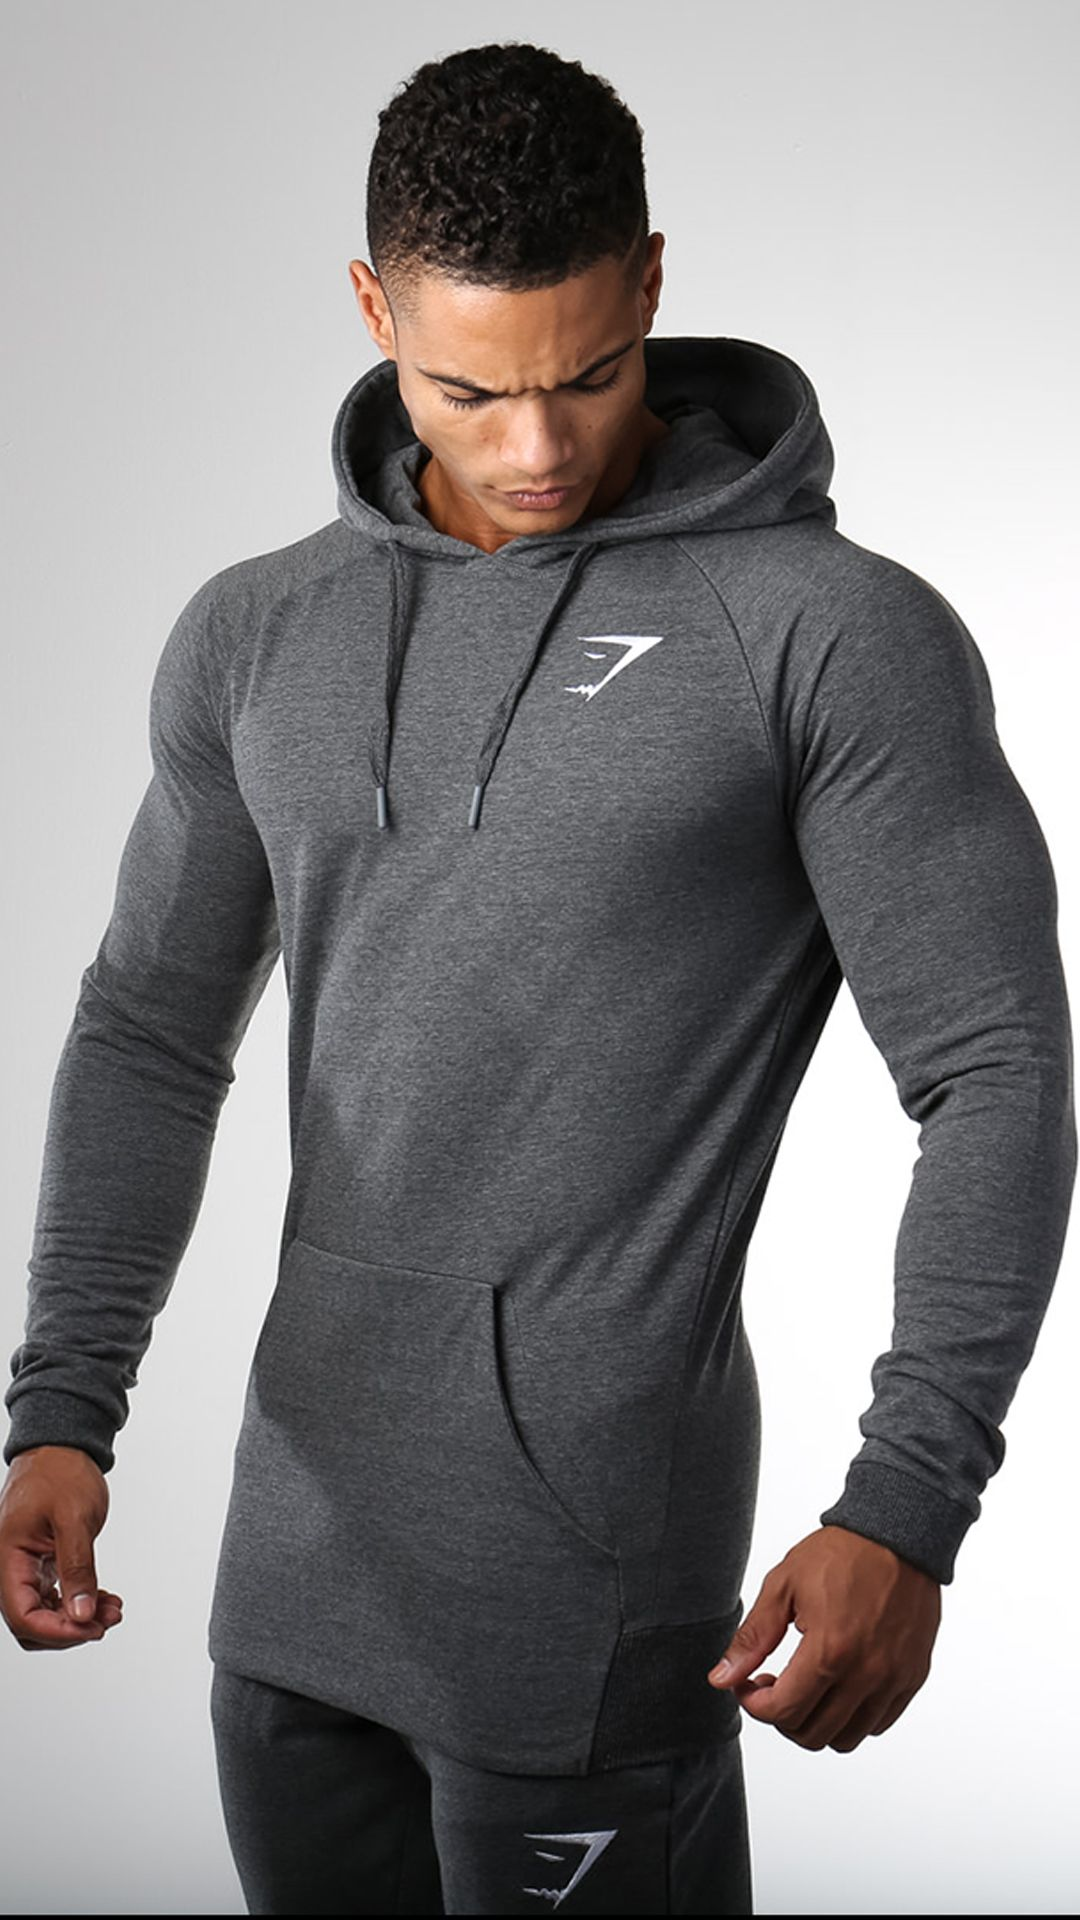 The Ark Men s Pullover is the latest addition to the Gymshark hoodie  collection and offers the supreme comfort and design you d expect from  Gymshark. badc24c49986